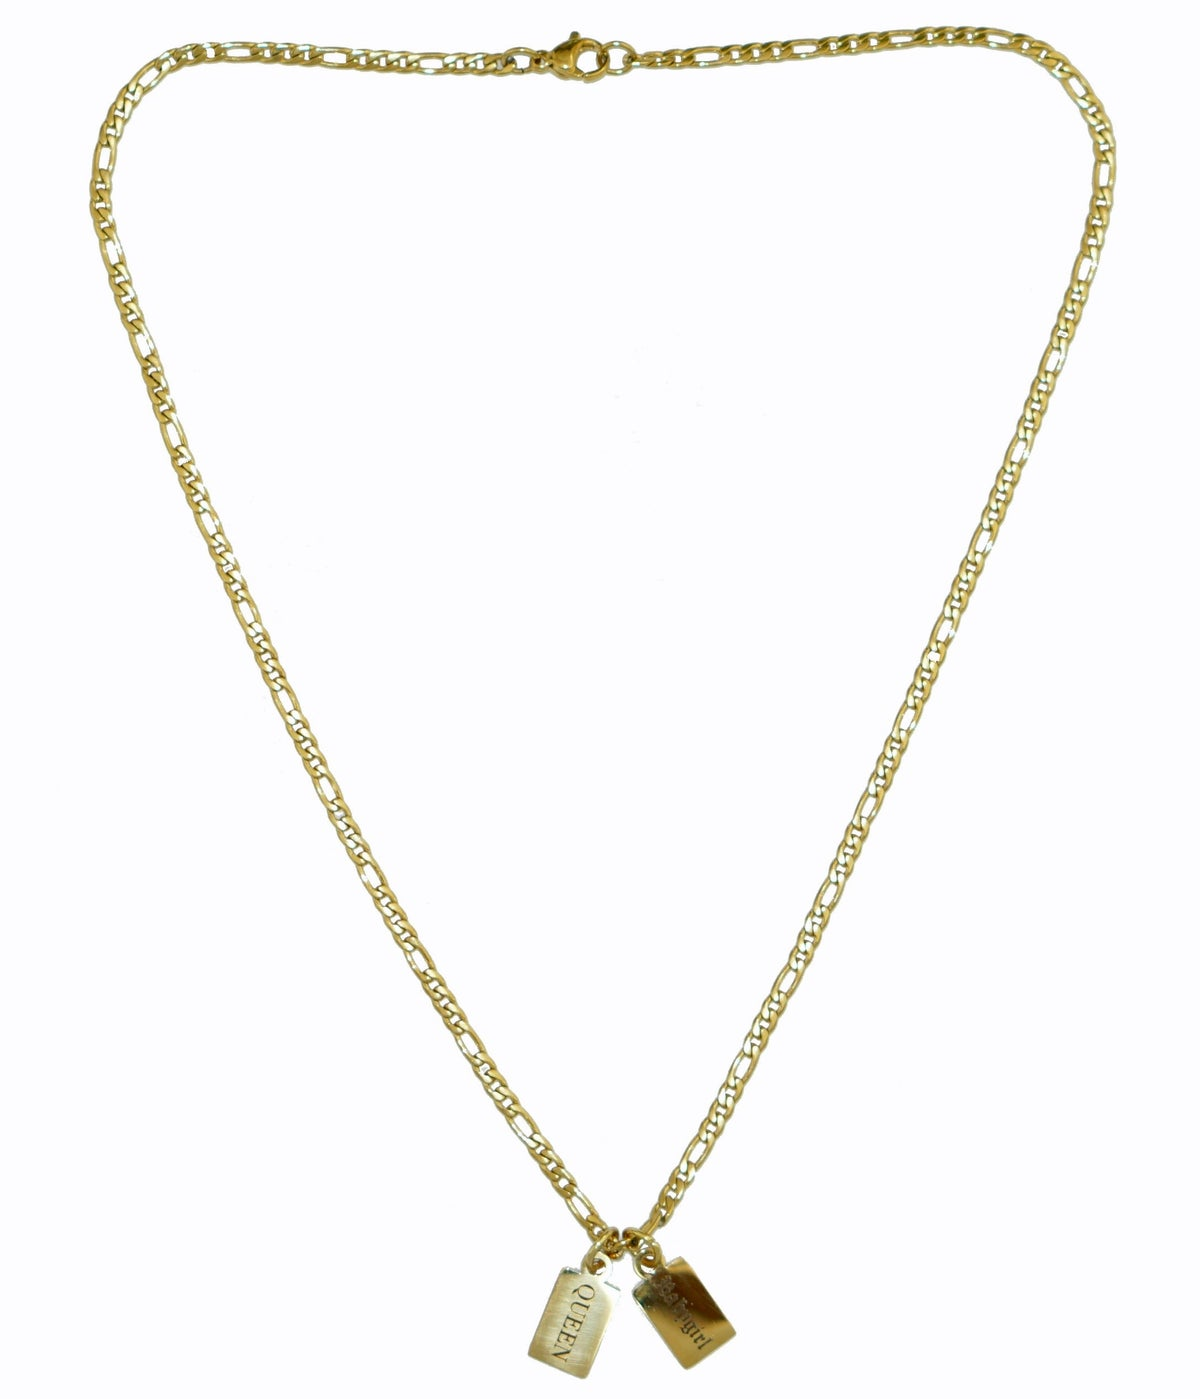 Image of I AM necklace